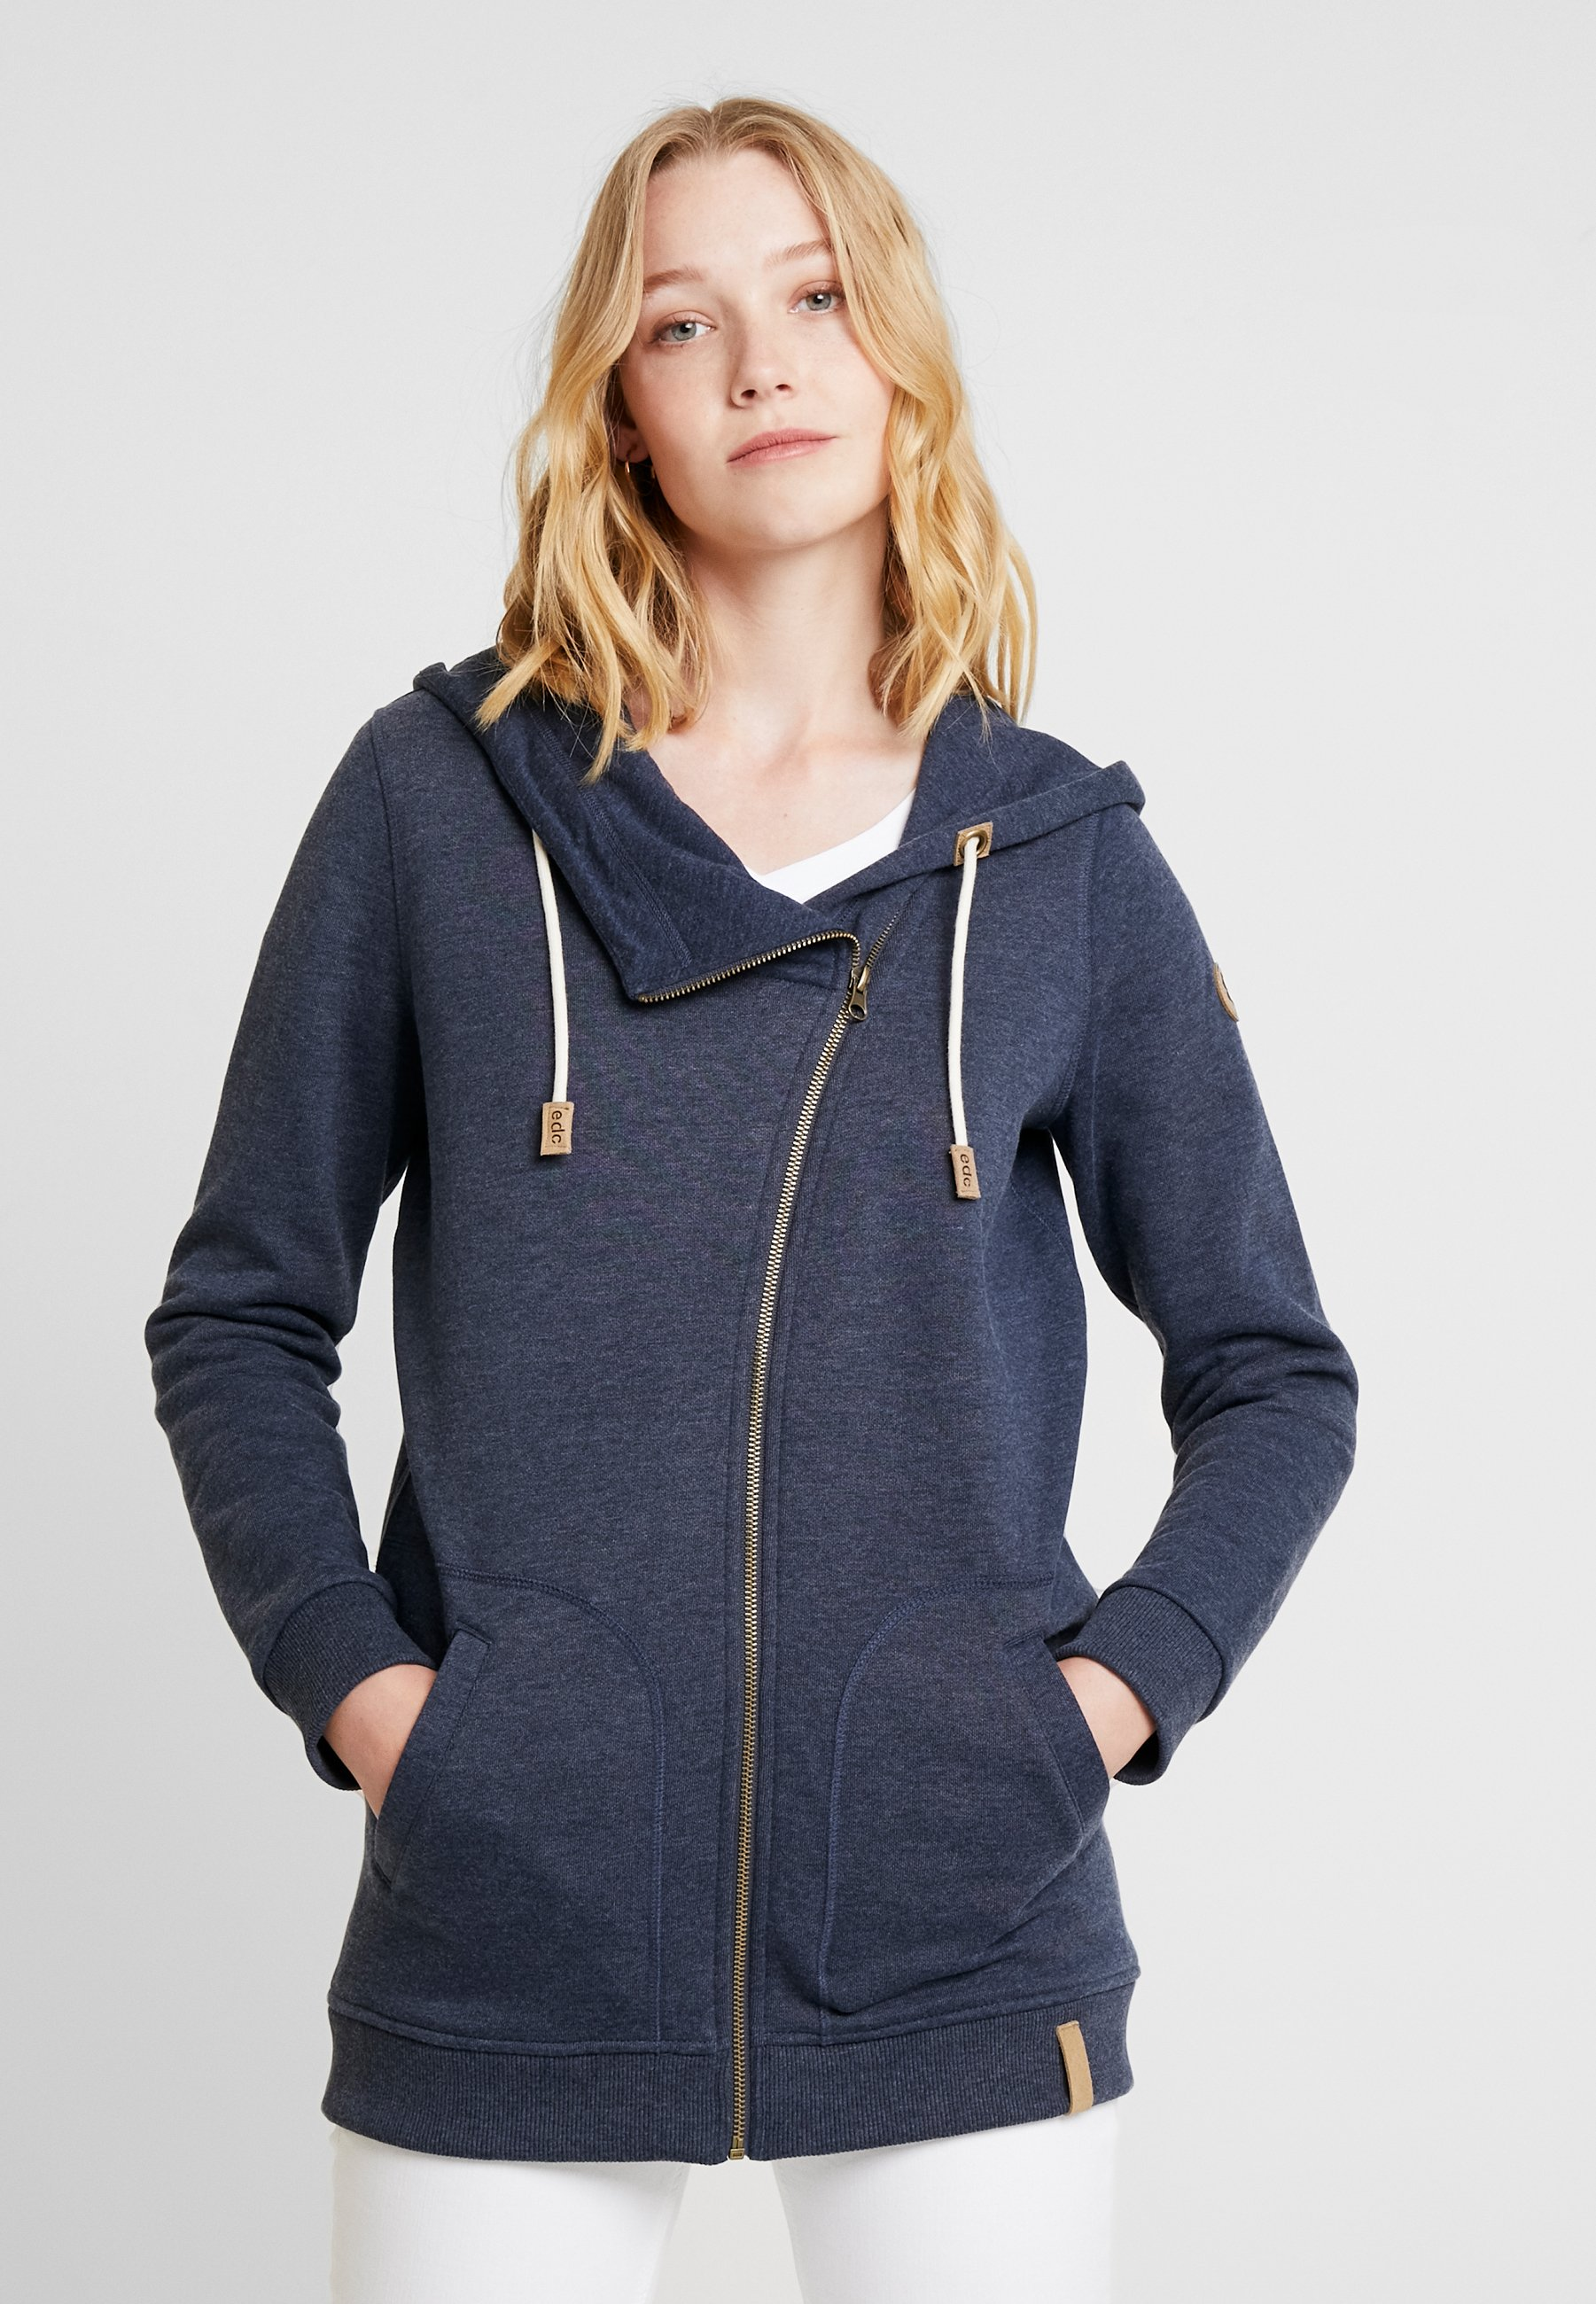 En By Zippée Sweat Zip HoodyVeste Edc Esprit Navy dtQrshC